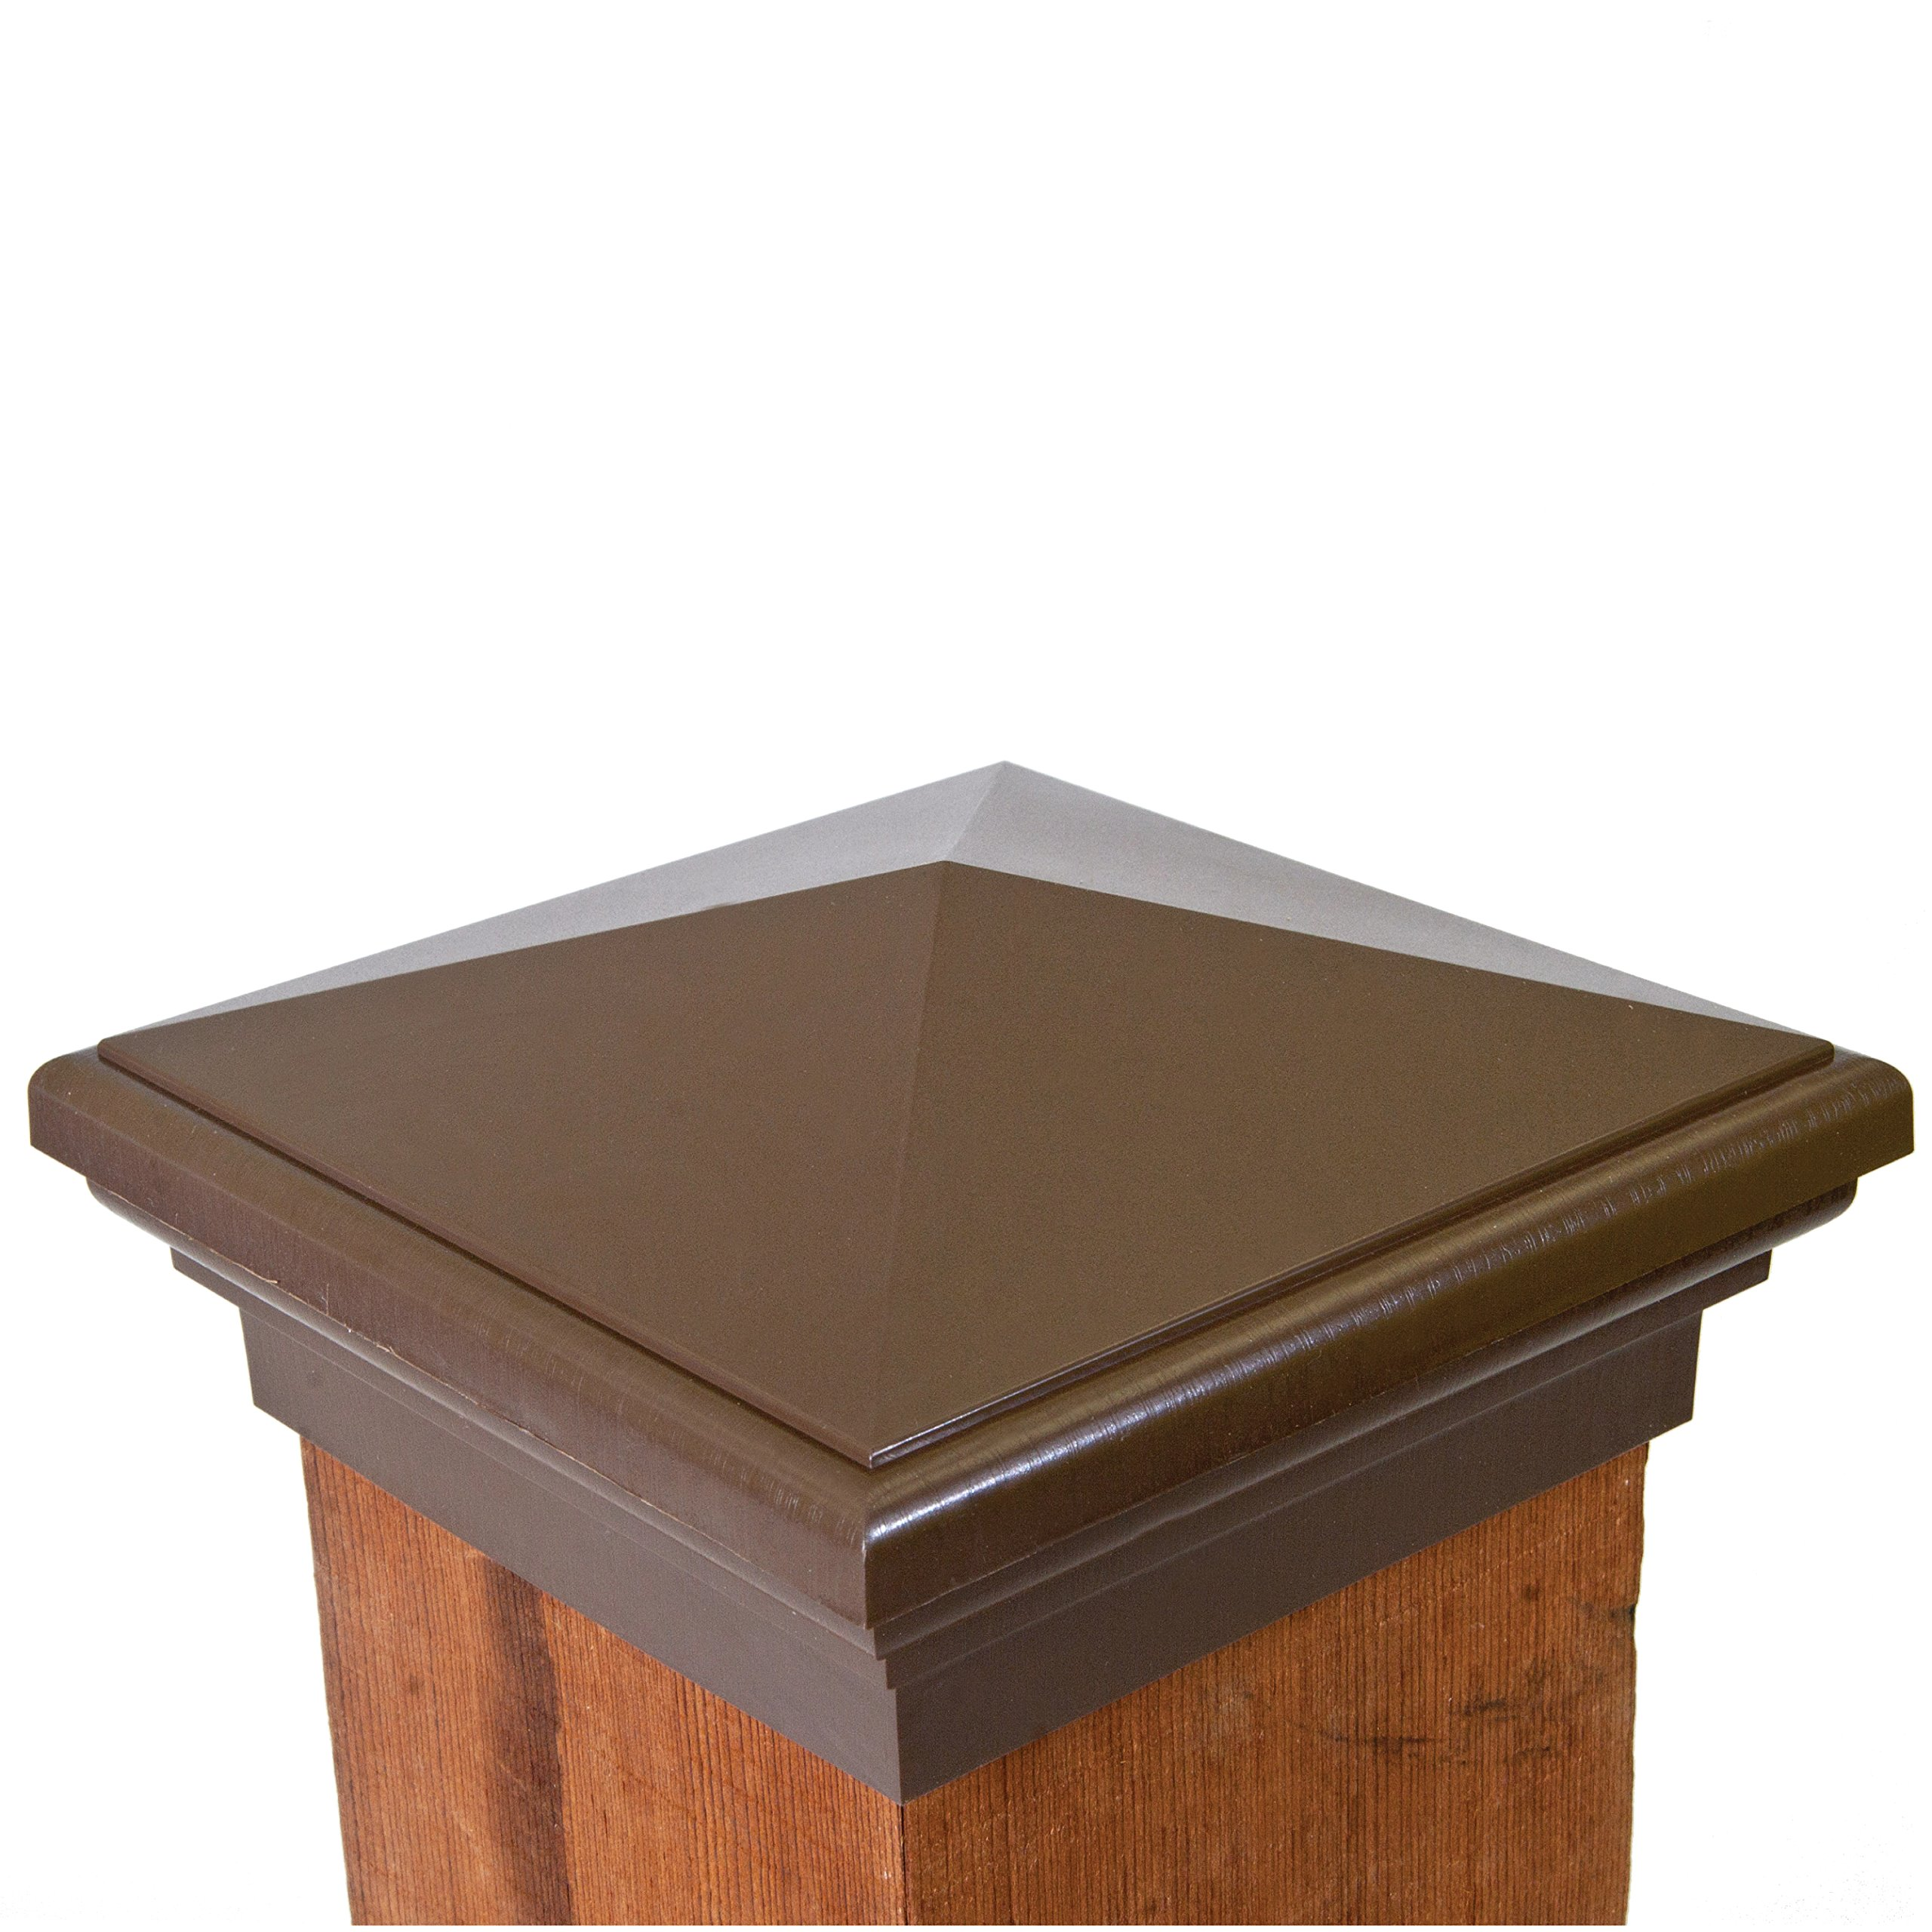 Atlanta Post Caps 6x6 Post Cap | Mocha Brown New England Pyramid Style Square Top for Outdoor Fences, Mailboxes & Decks